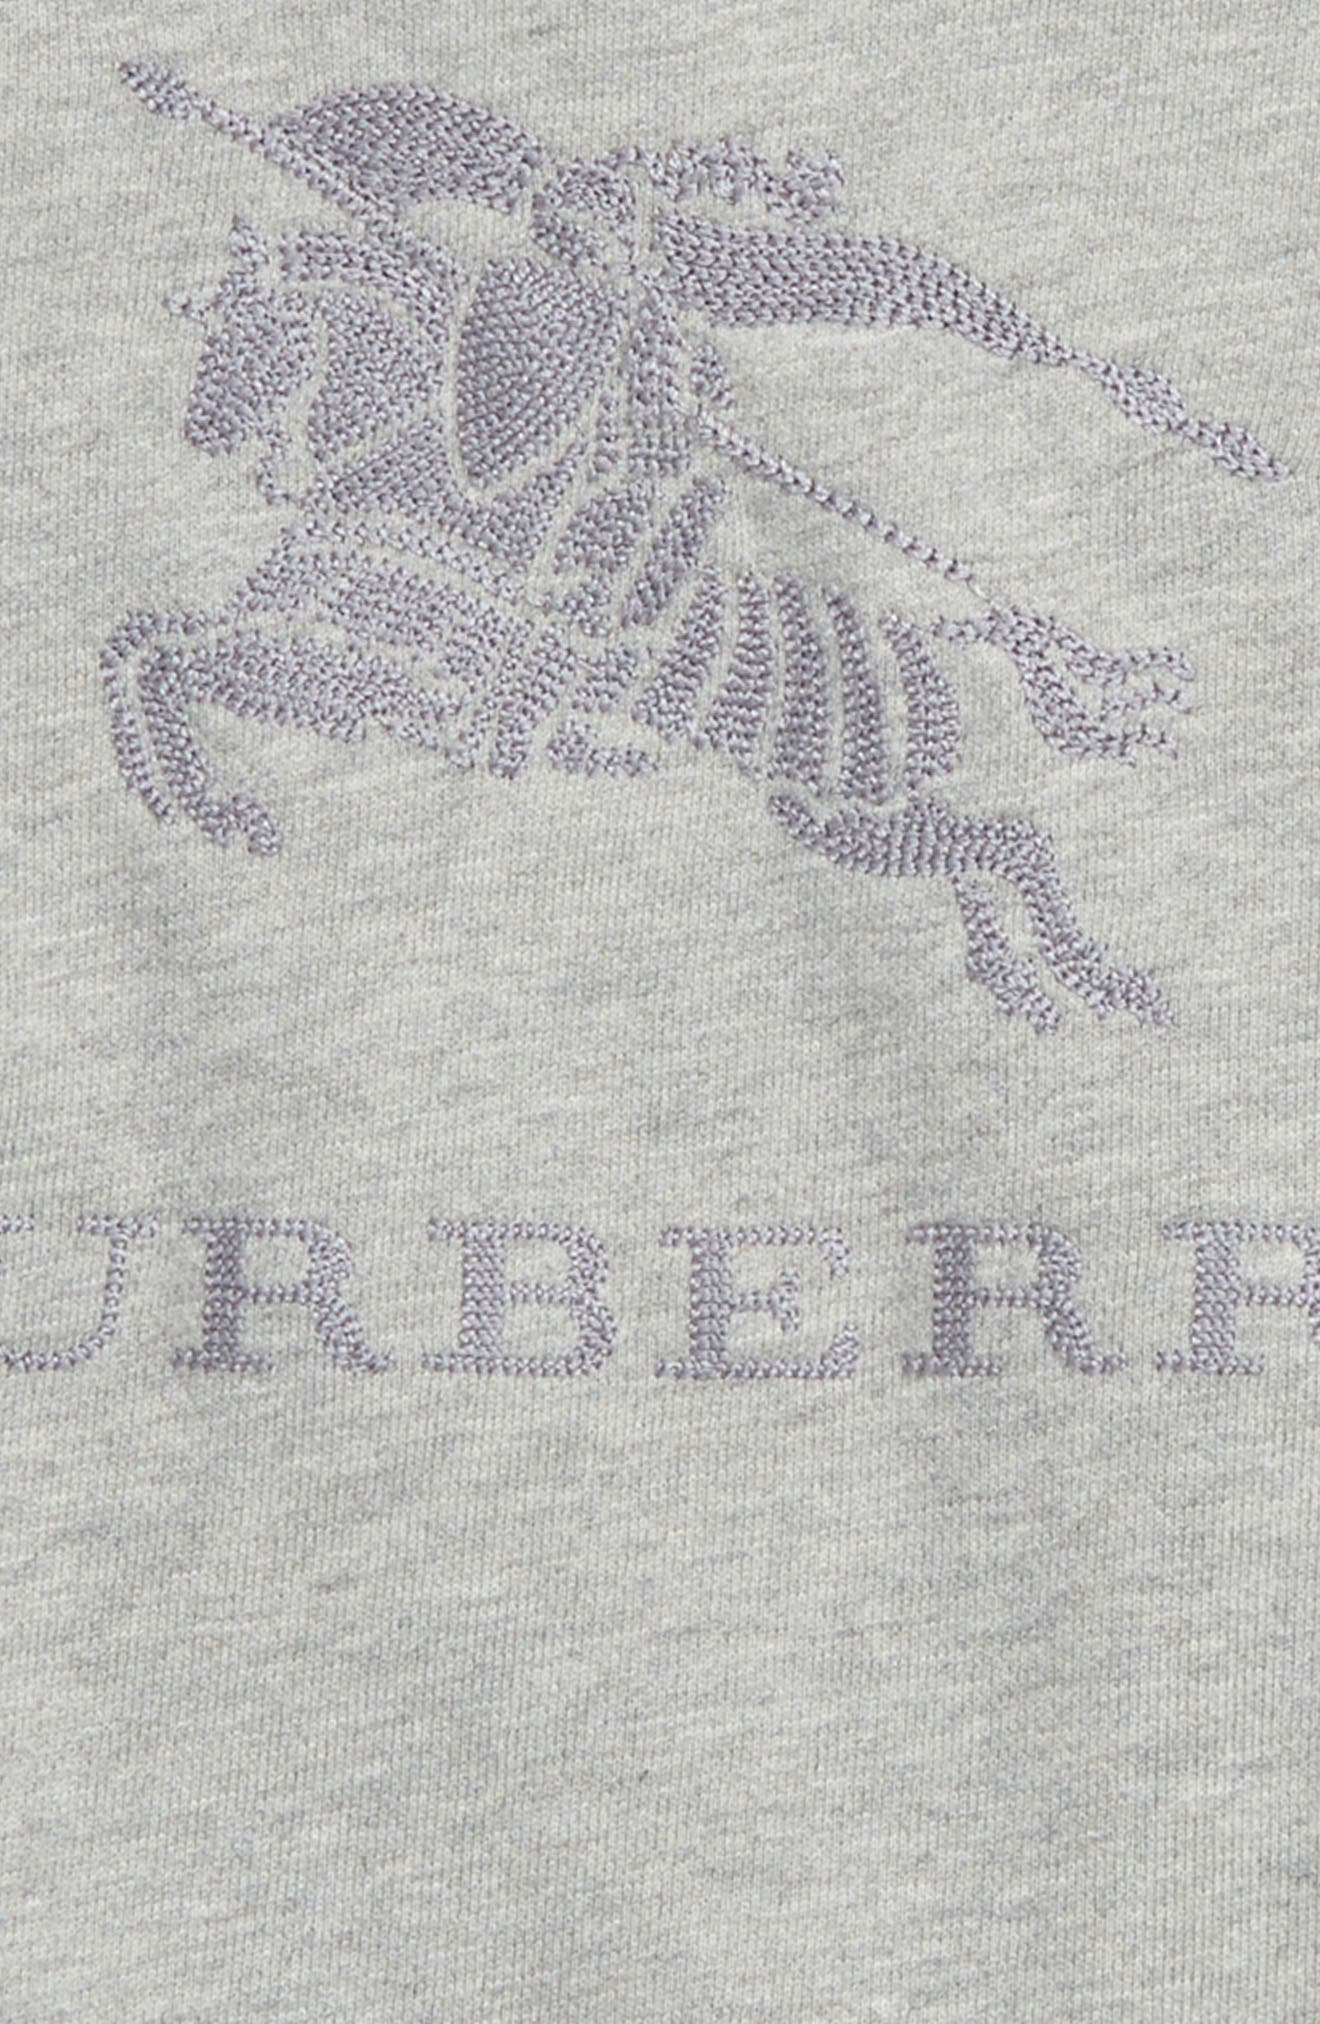 Tom Embroidered Pullover,                             Alternate thumbnail 2, color,                             035